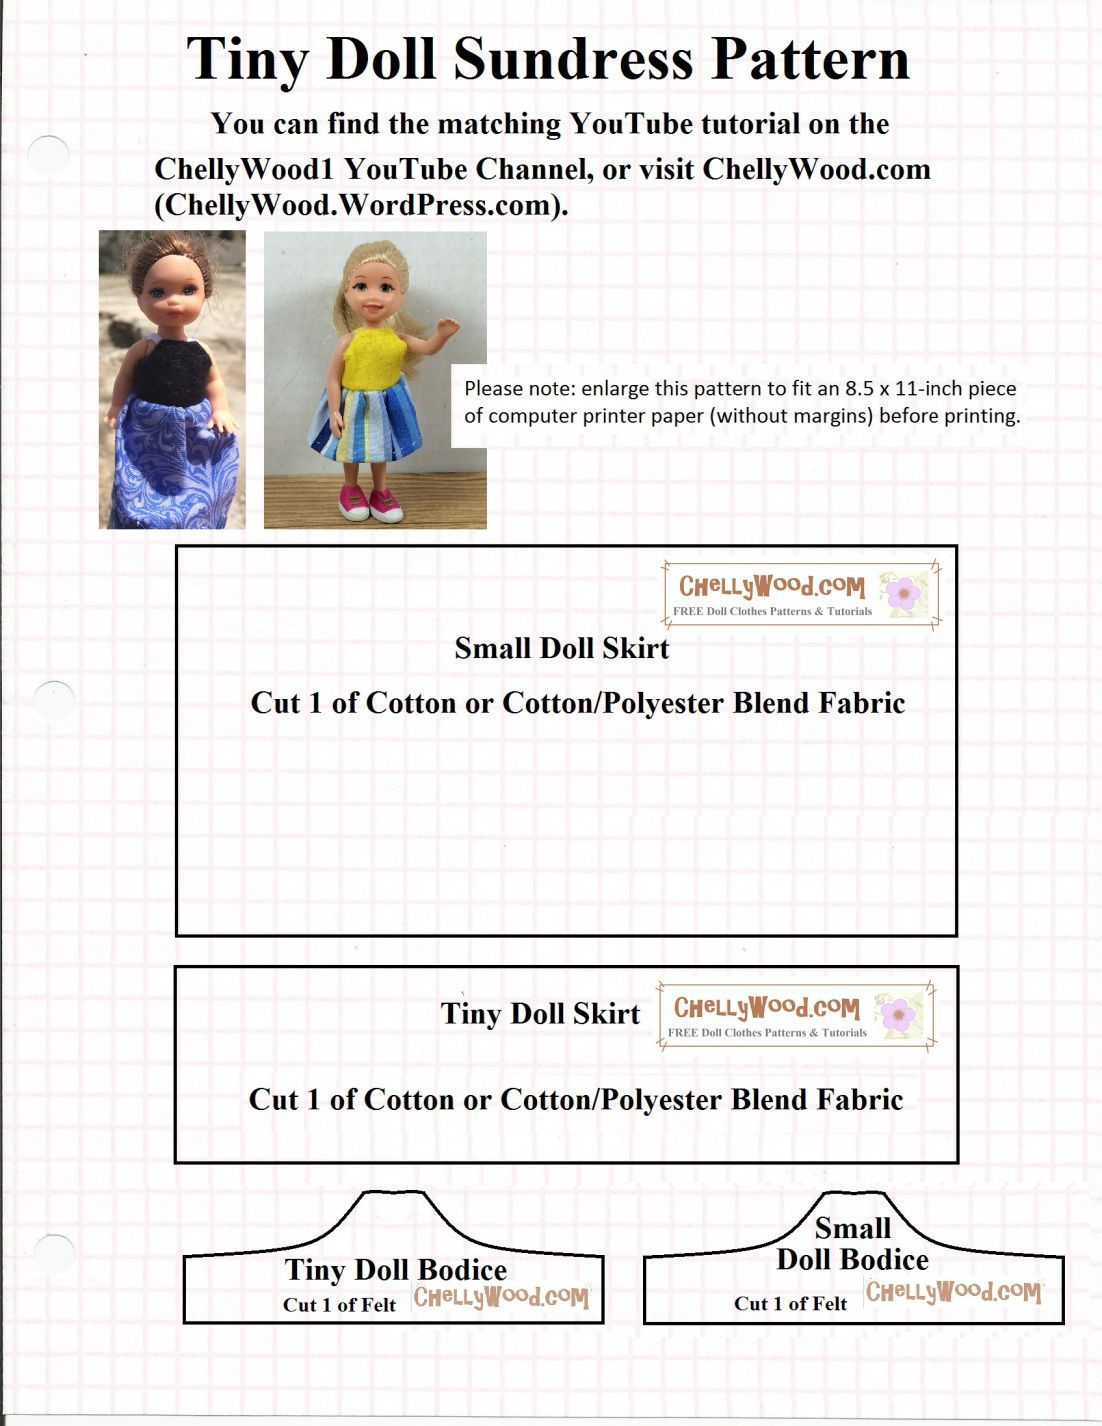 Image Shows A Doll Dress Pattern For A Tiny Doll Sundress To Fit